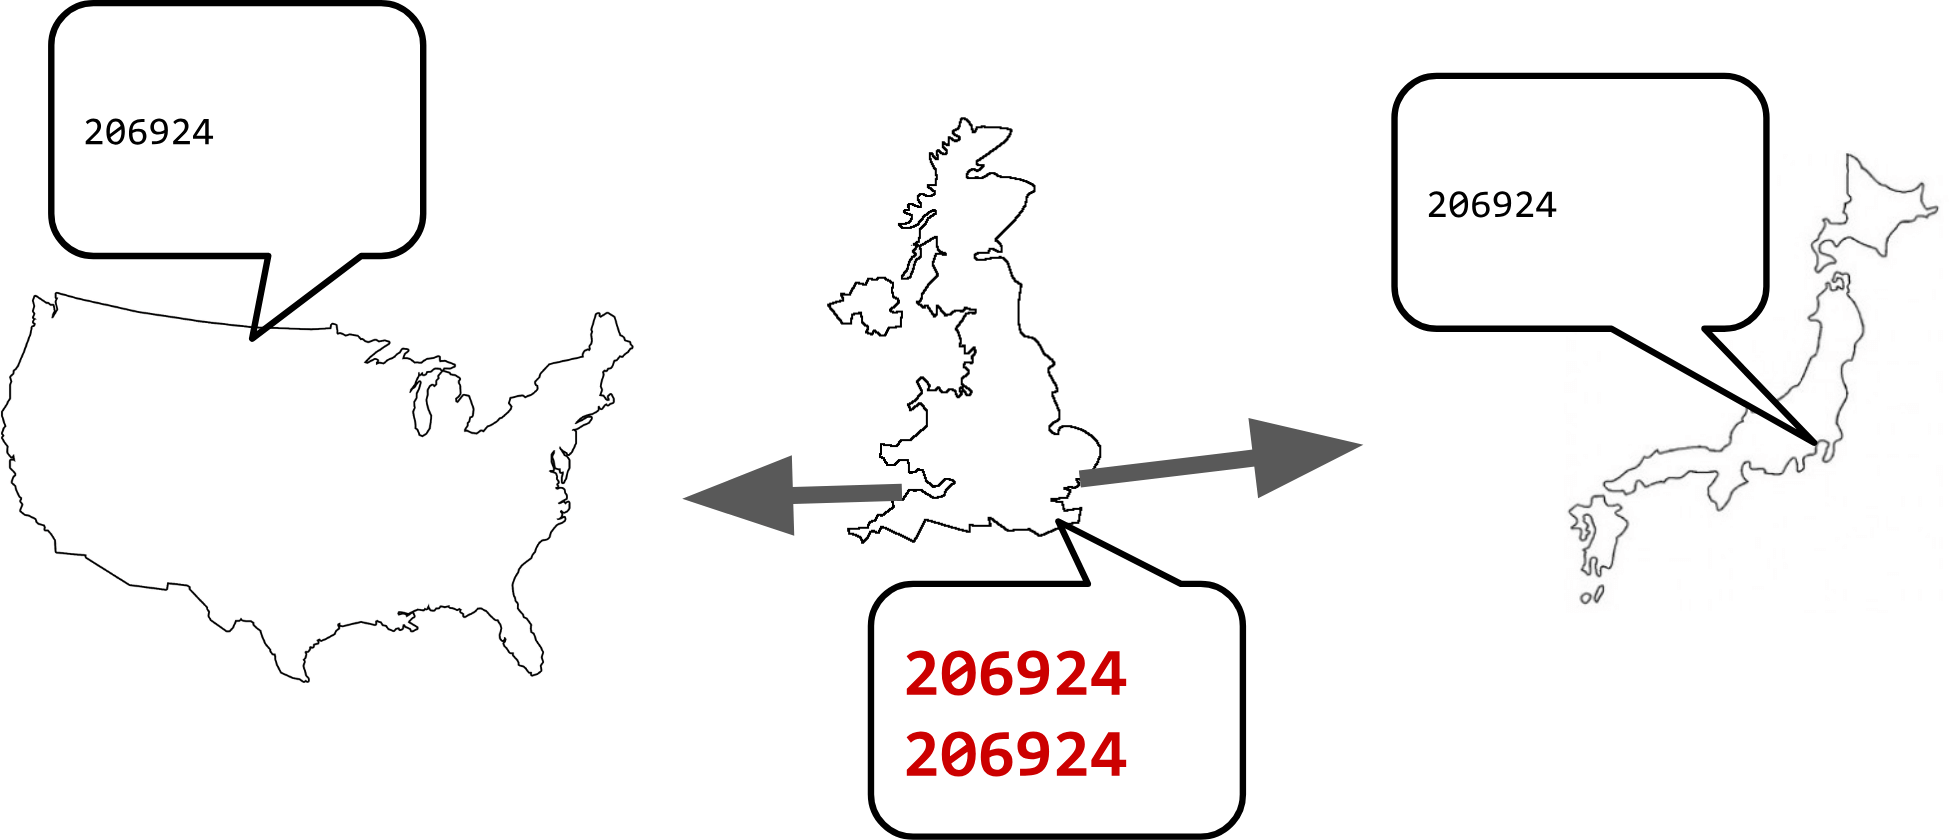 one country announcing a longer AS_PATH than the rest, causing traffic to move away